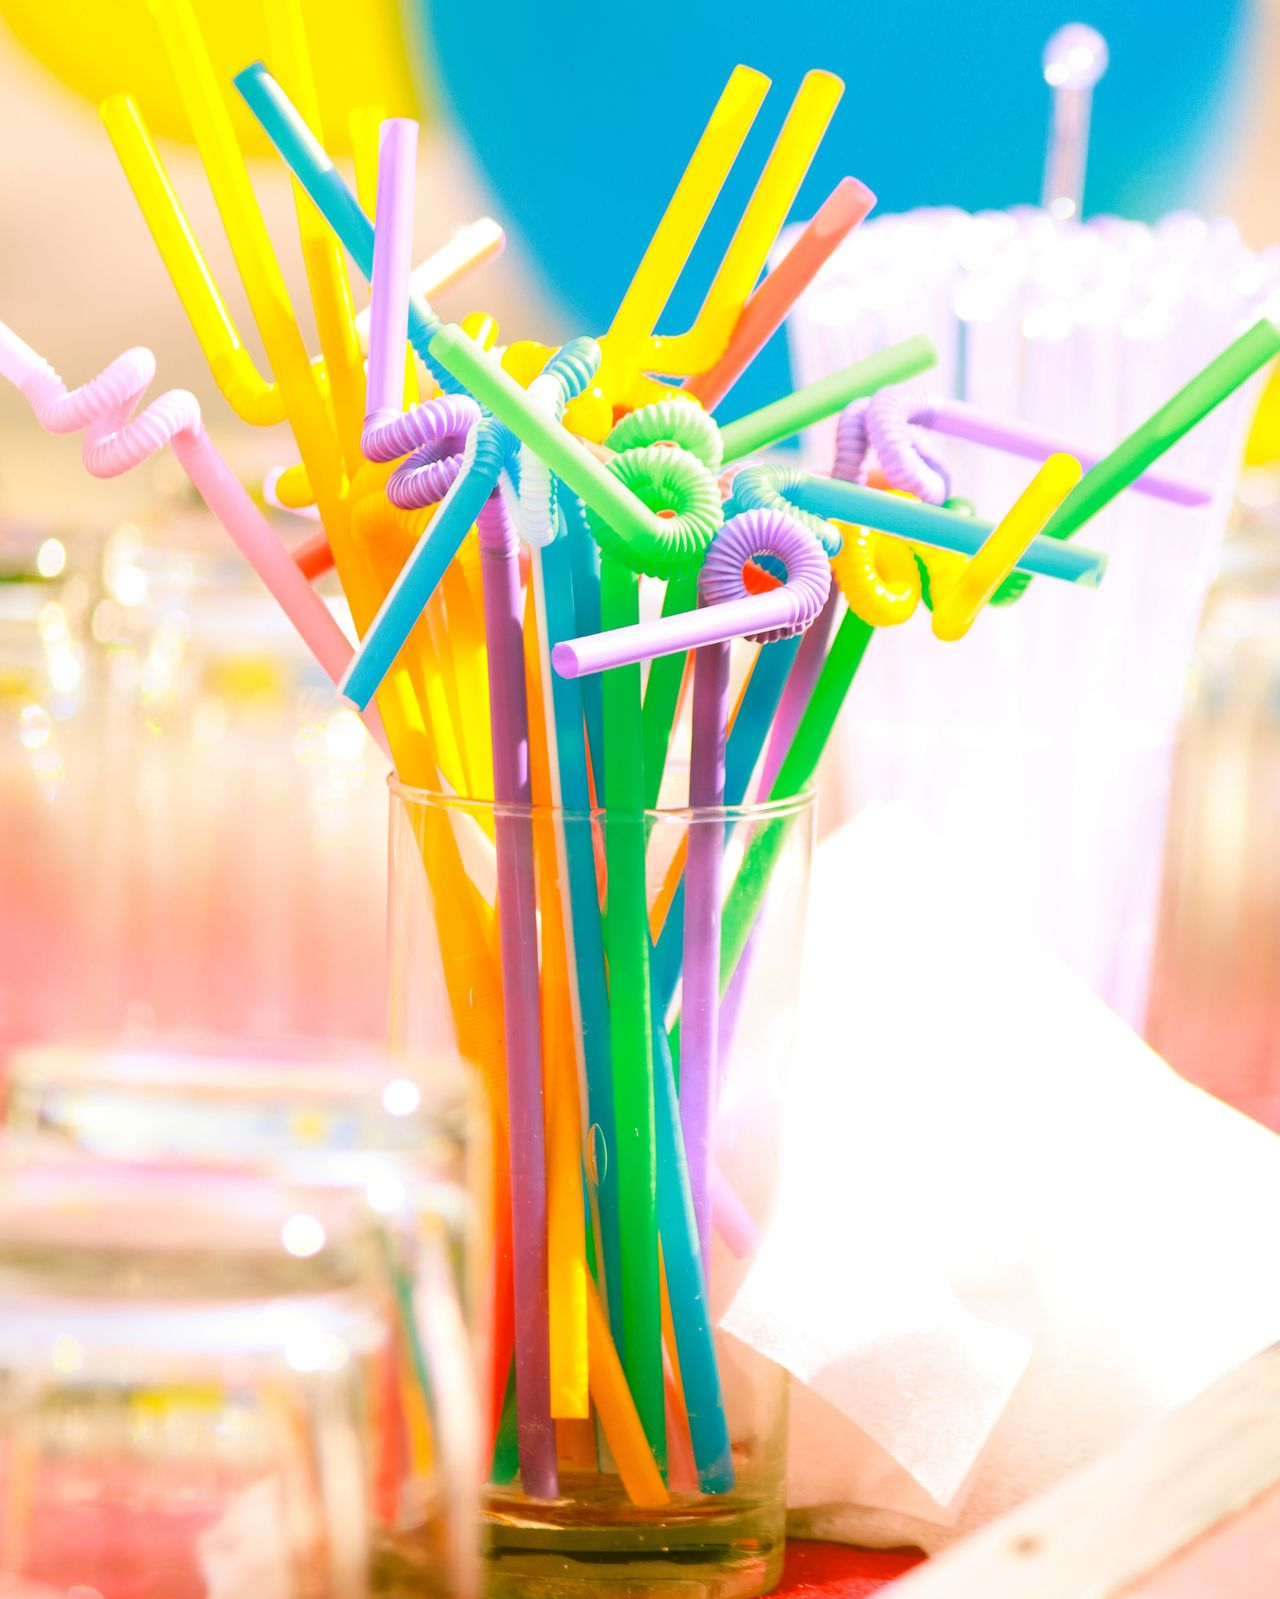 Happy Colors Multi Colored No People Day Outdoors Loveforphotography Happiness Birthdayparty Straw Canon700D